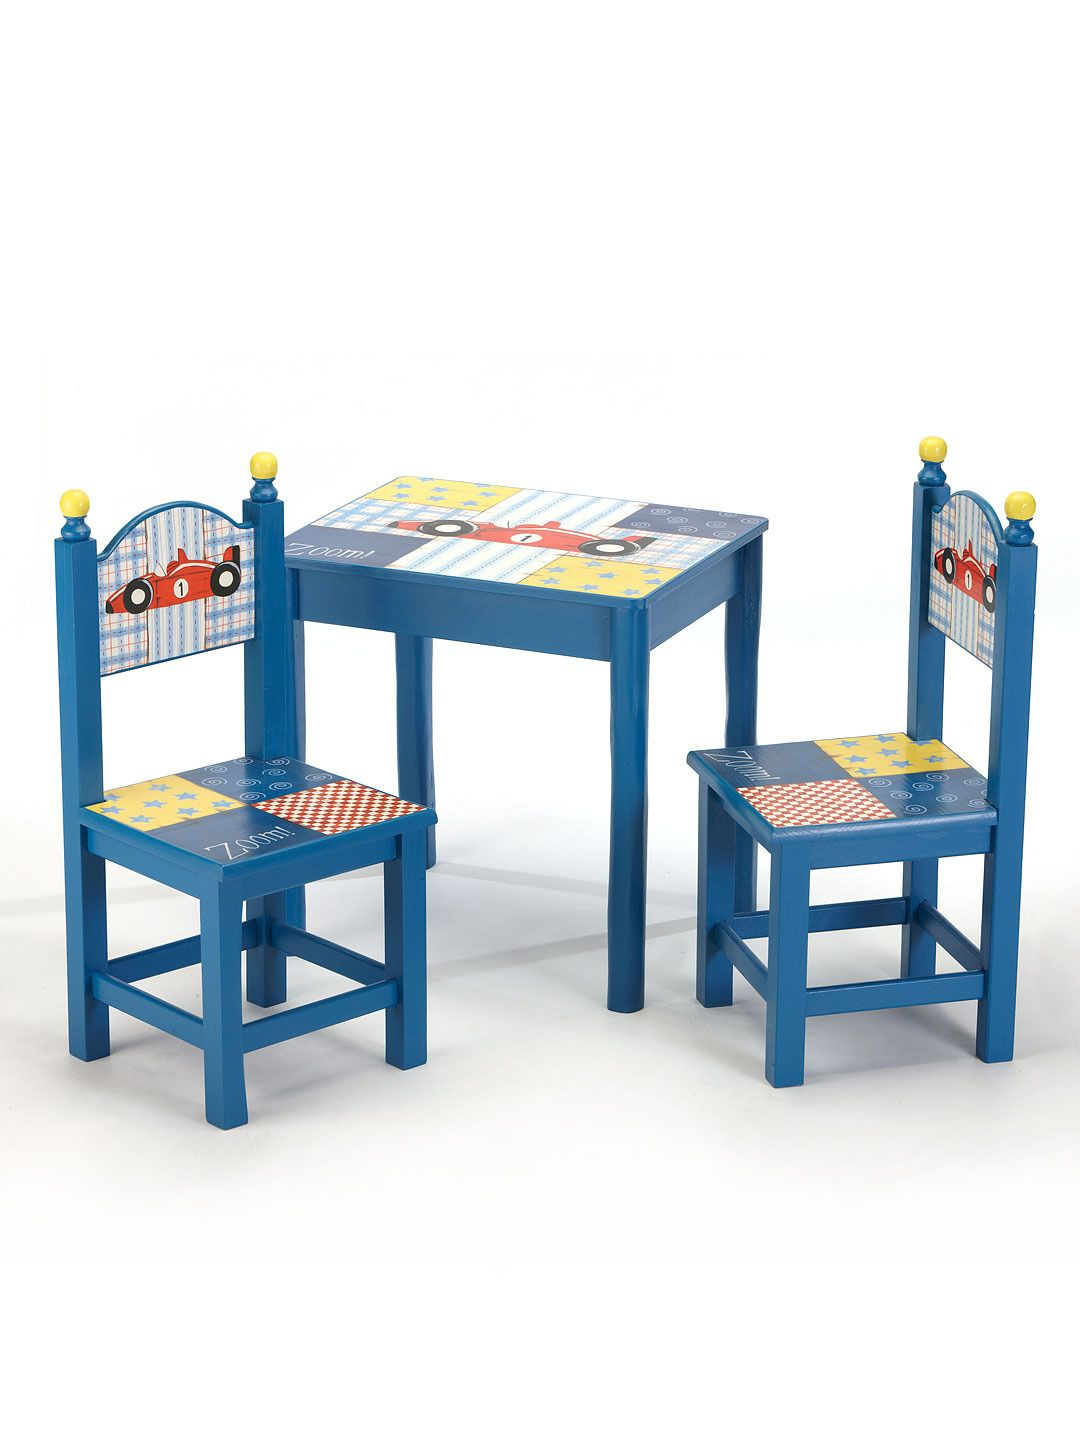 Racecar Chair Table Set By Kindergarten Plus At Gilt Table And Chairs Desk With Drawers Chair Set